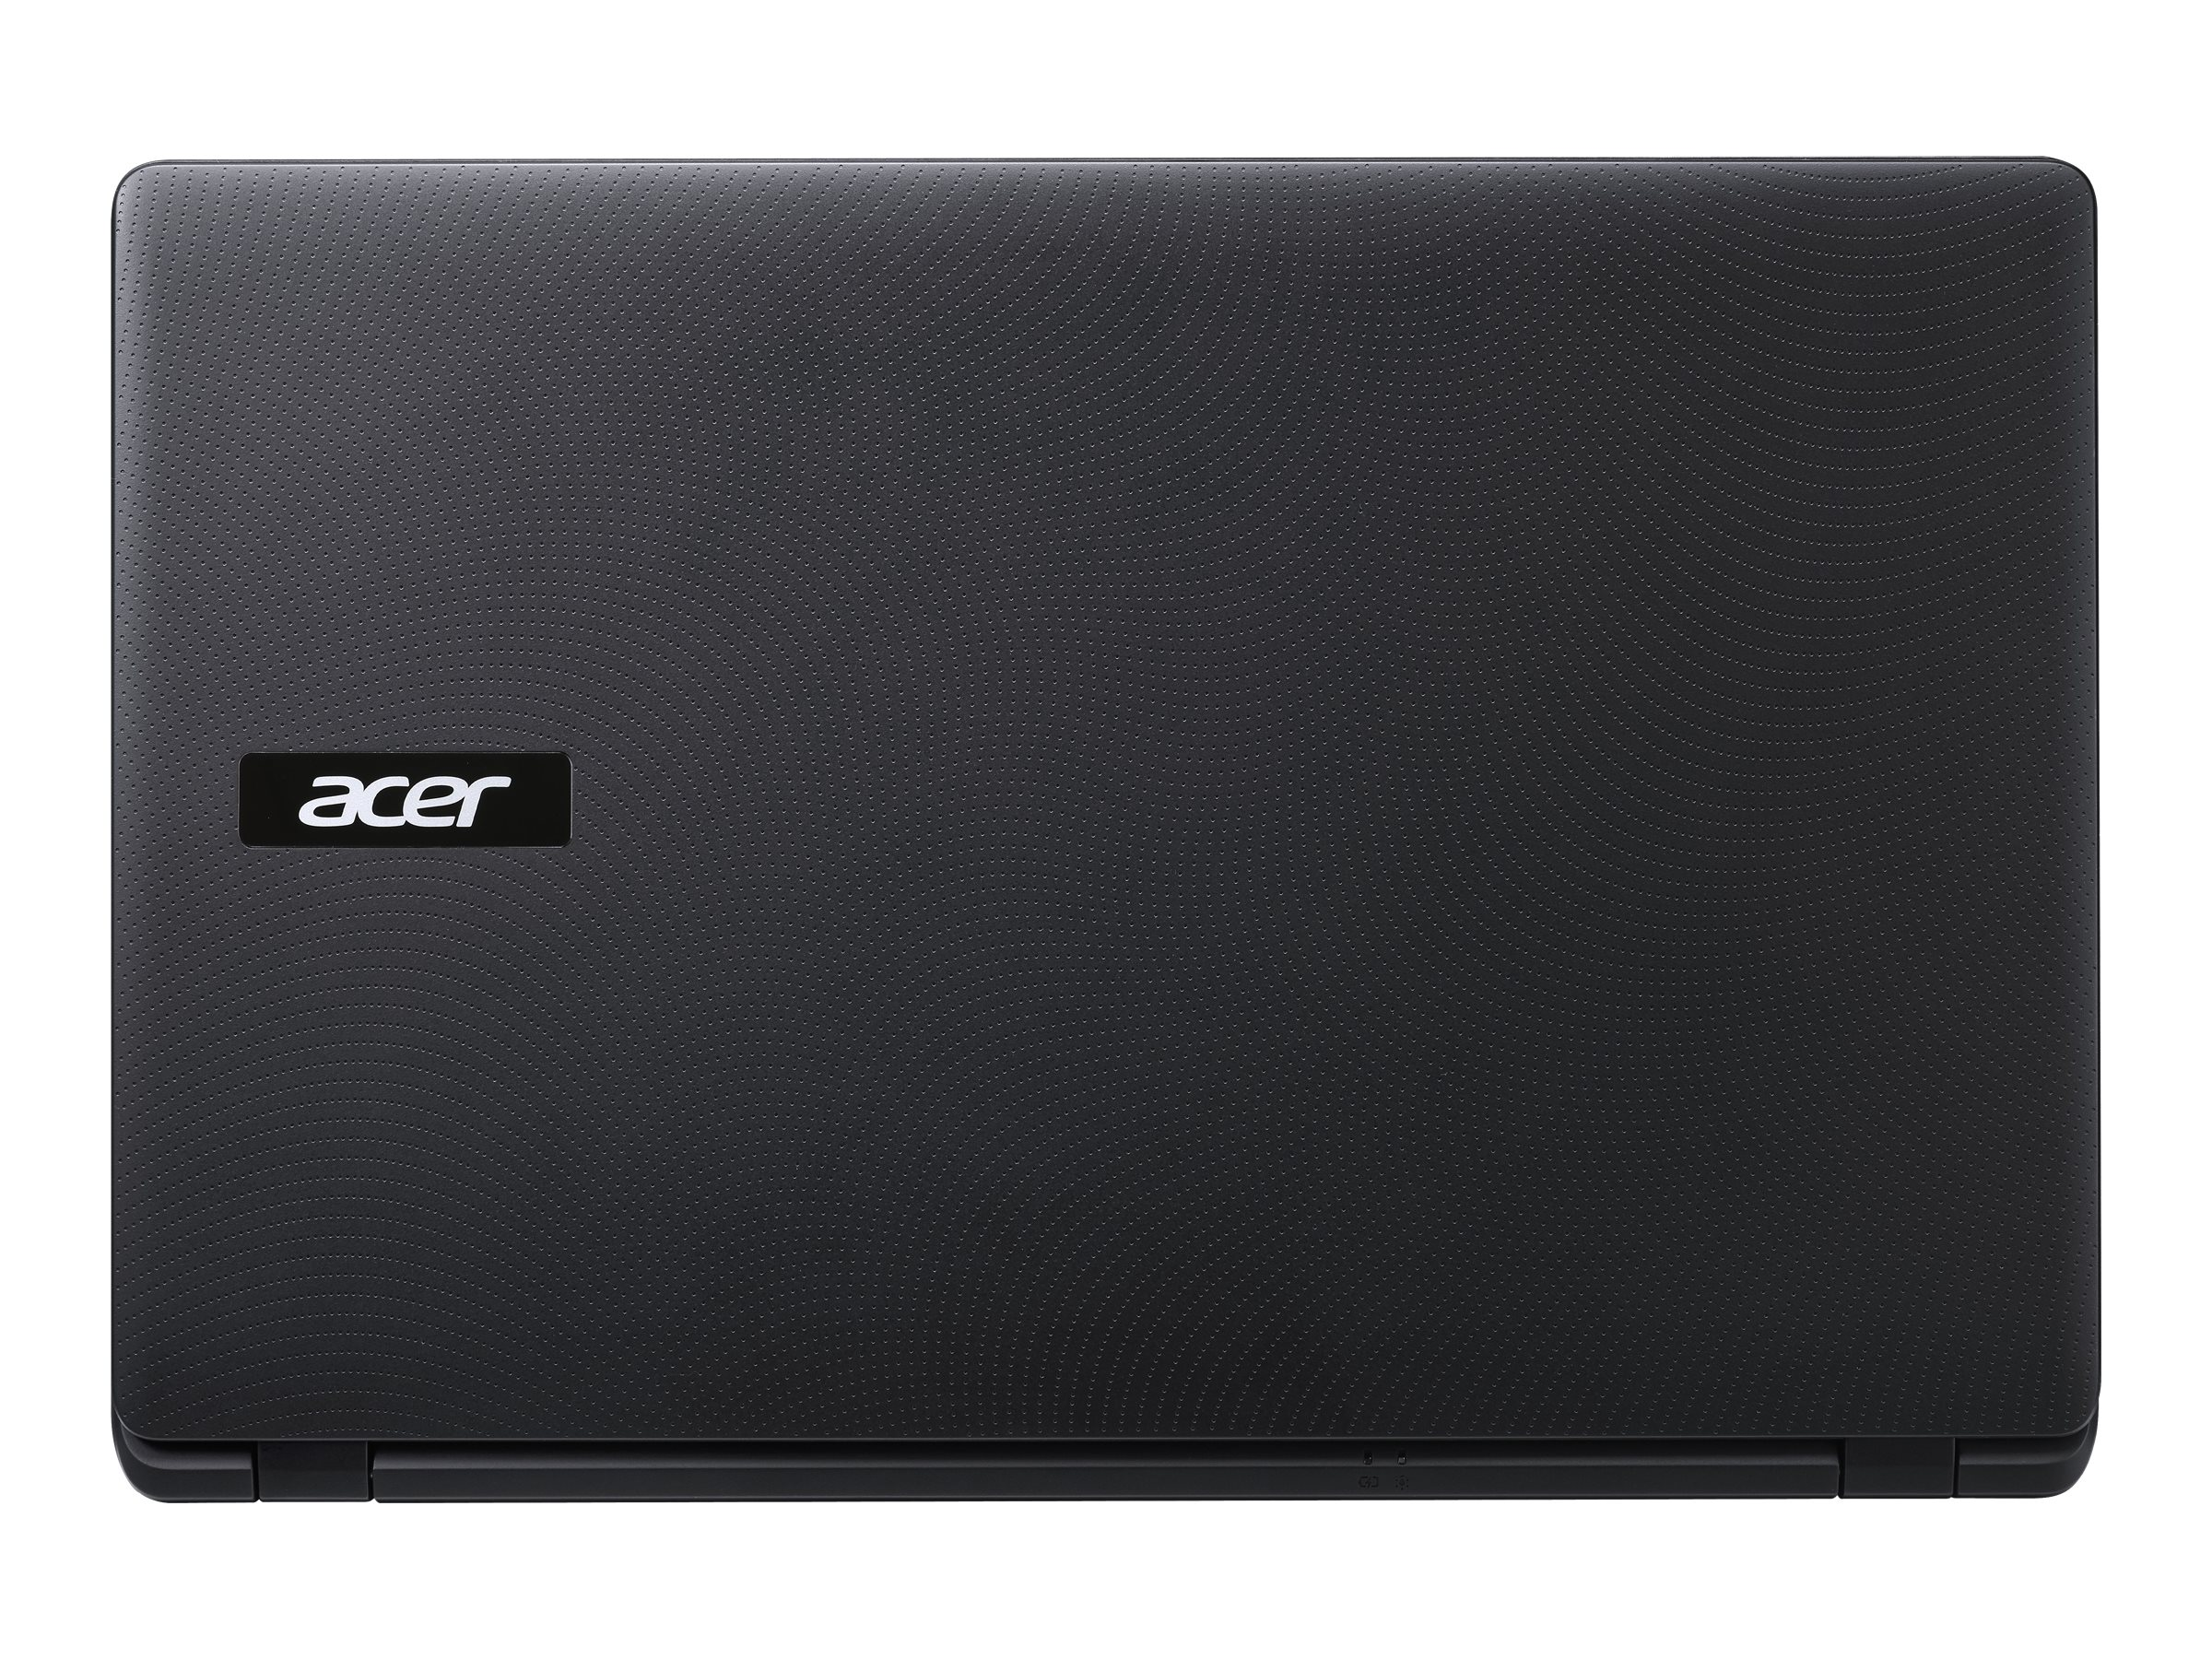 Acer NX.GCEAA.004 Image 10